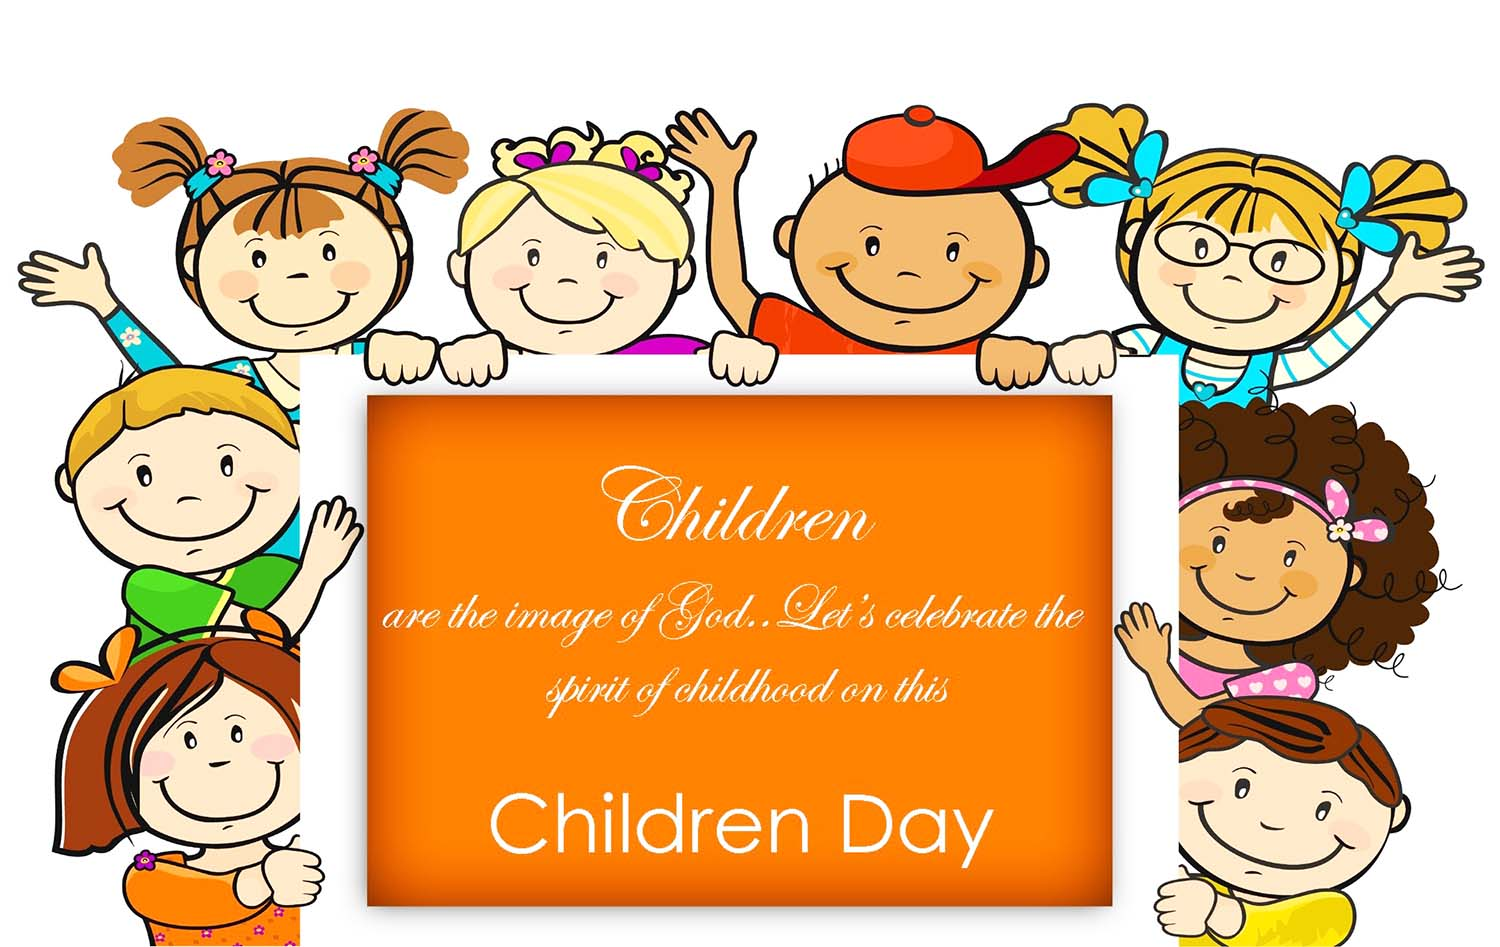 poem on children's day